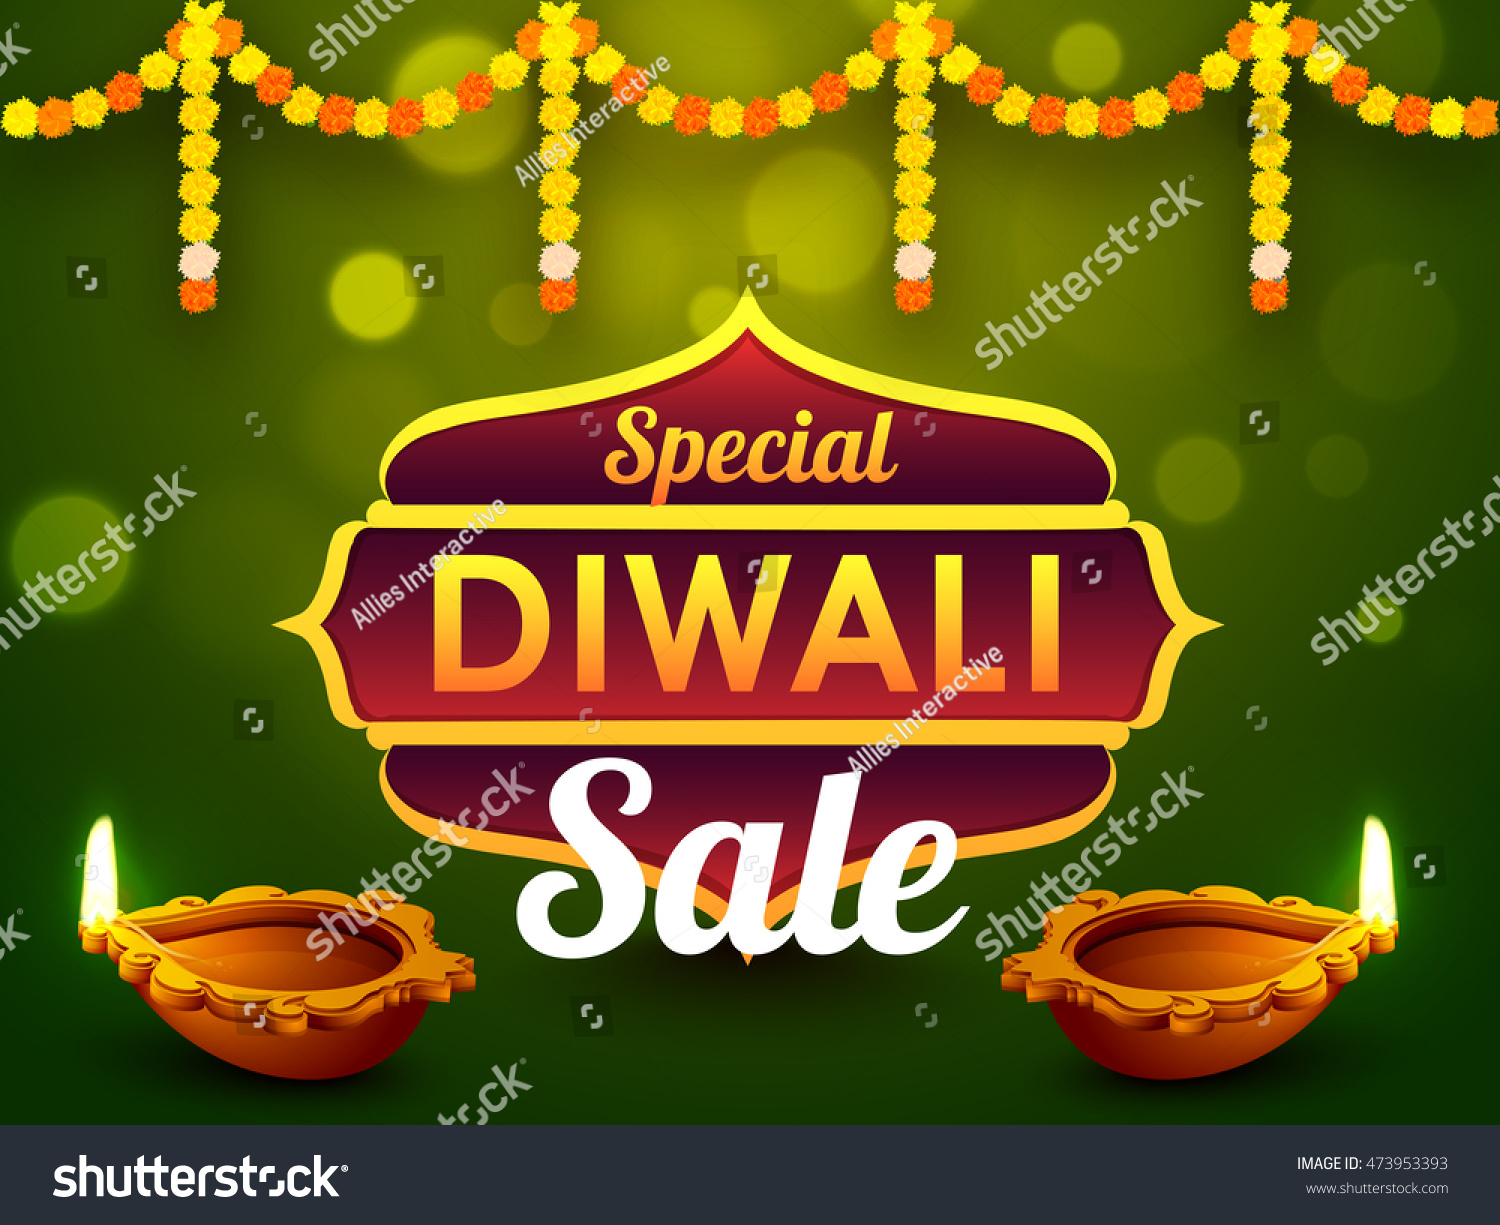 Special Diwali Sale Banner Discount Offer Stock Vector